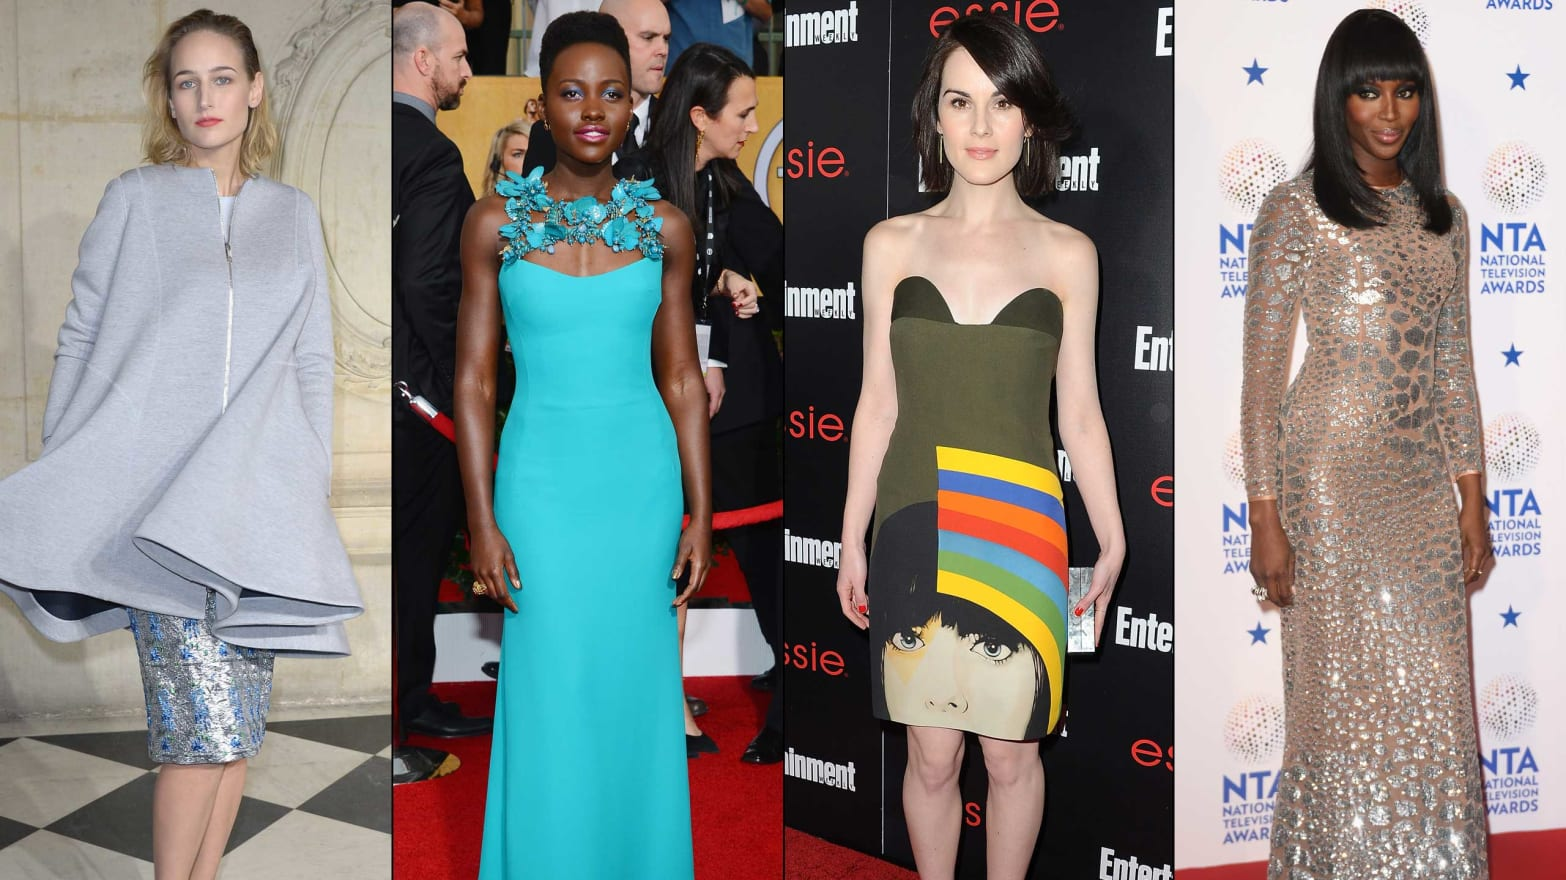 827da7770 From Lupita Nyong'o to Naomi Campbell, the Best and Worst Dressed of the  Week